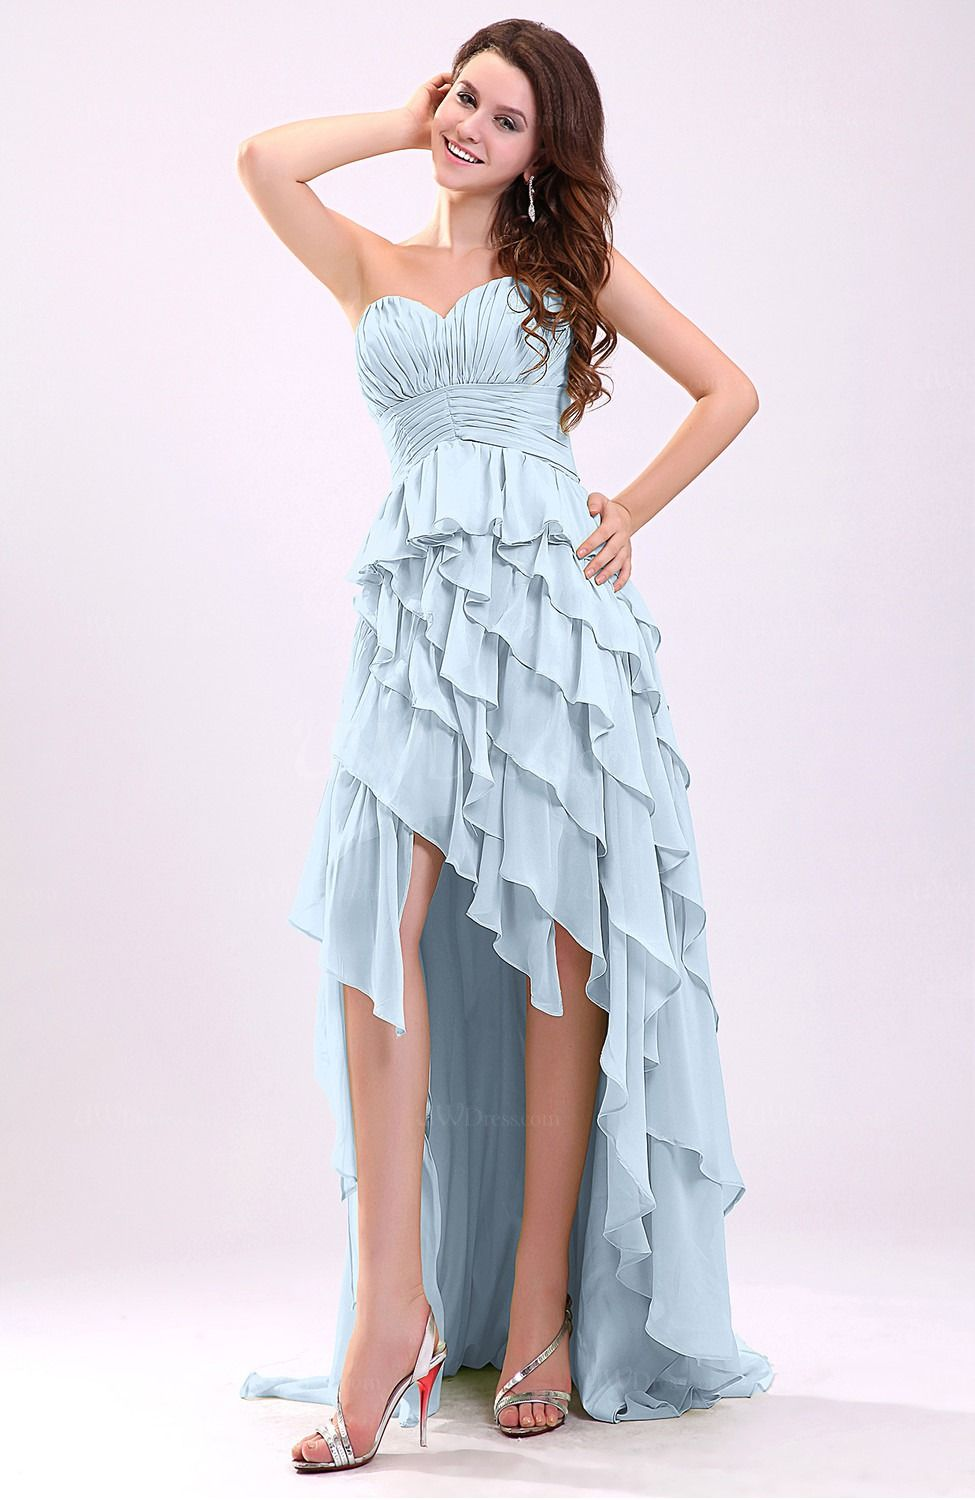 Ice blue ruffled chiffon hi low dress maid of honor outfit